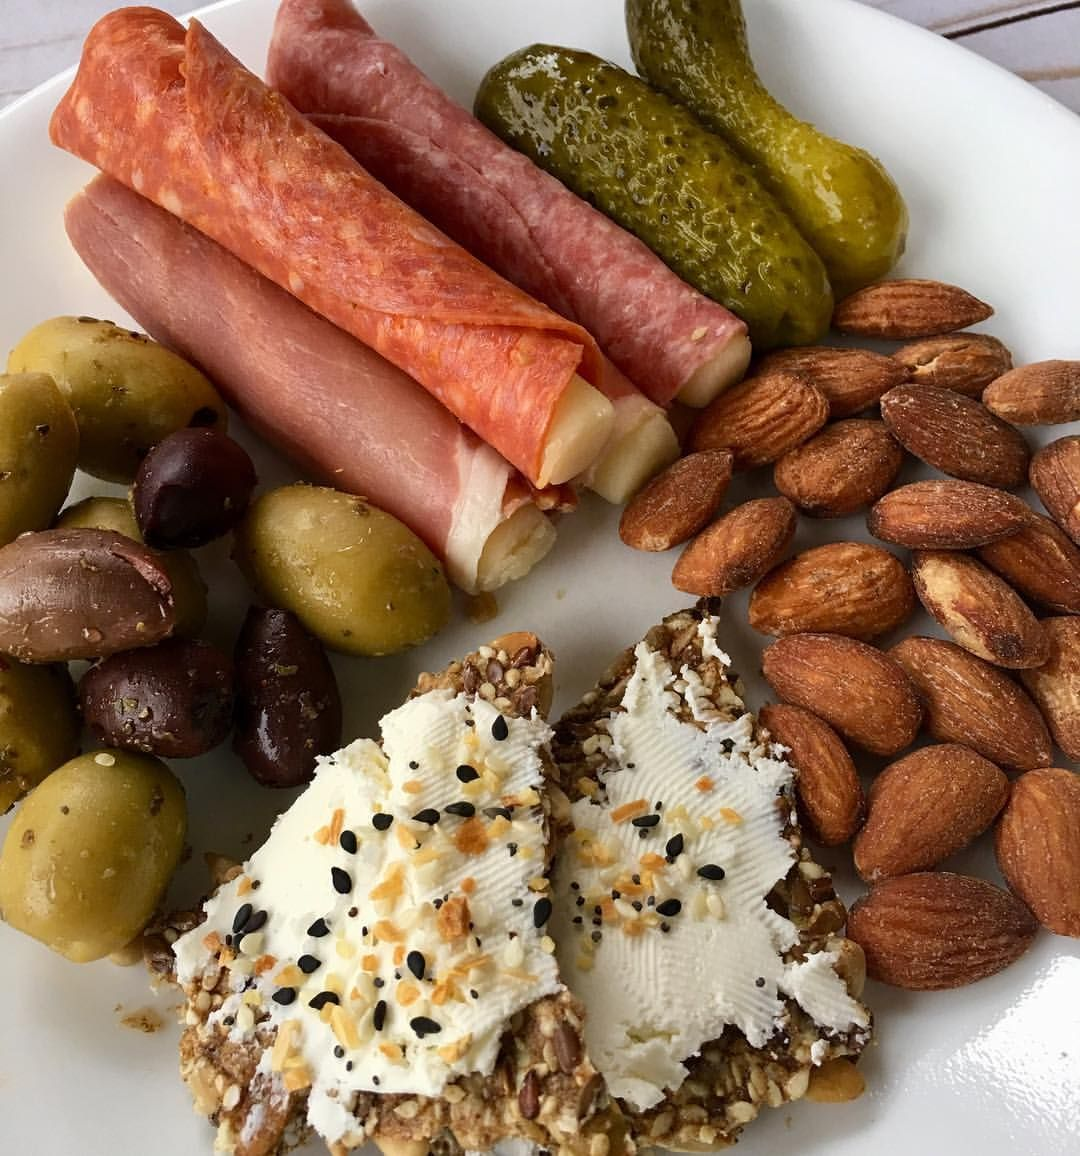 Snack Plate Lunch 129322 Olives Pickles Prosciutto Salami And Pepperoni Wrapped Around Mozzarella Sea Salted Almo Snack Plate Low Carb Lunch Keto Recipes